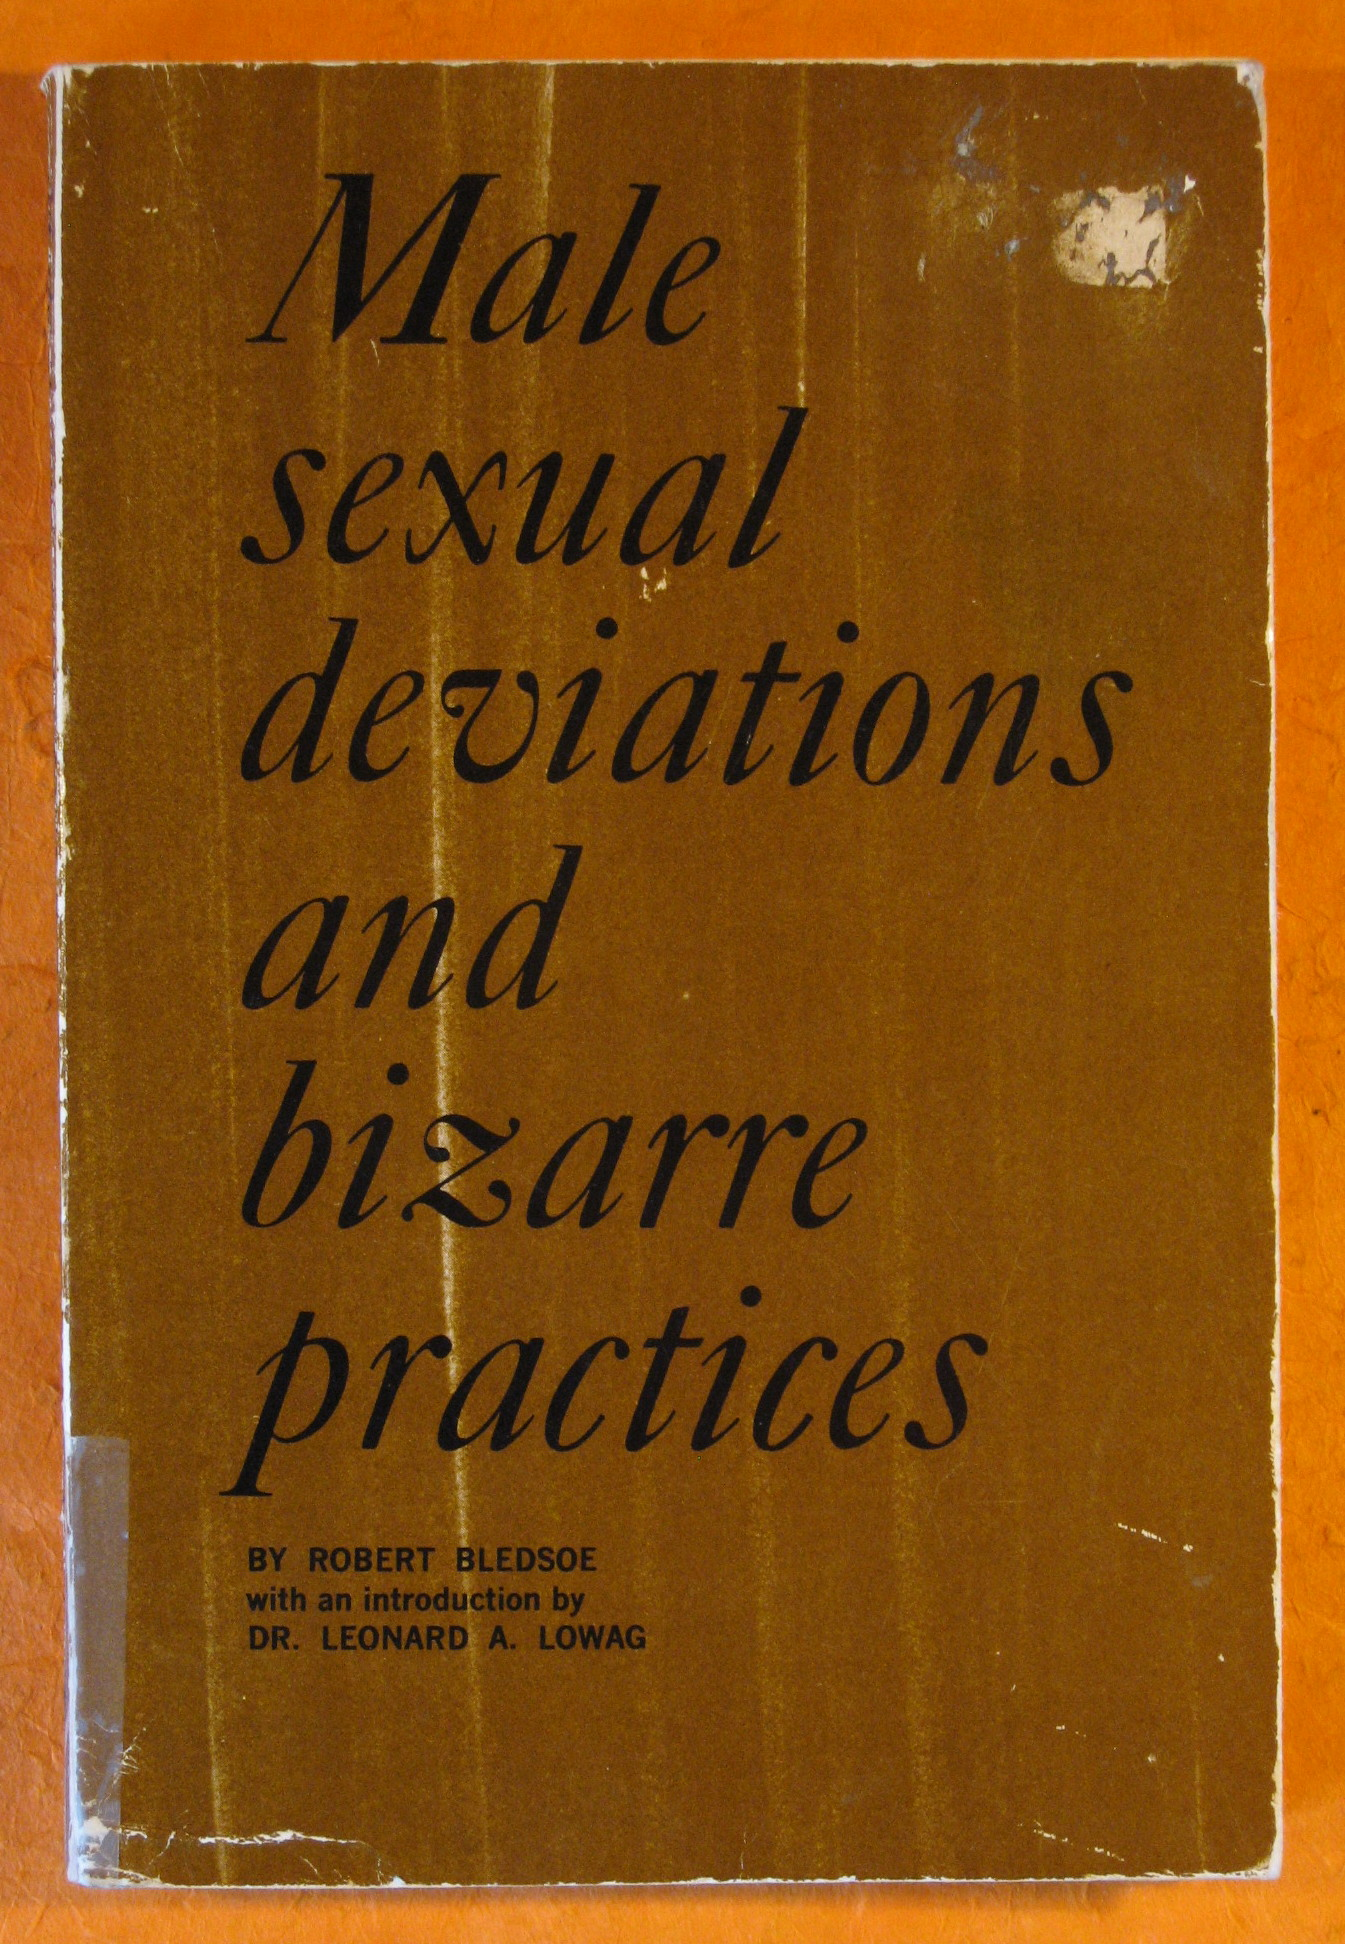 Male Sexual Deviations and Bizarre Practices, Bledsoe, Robert